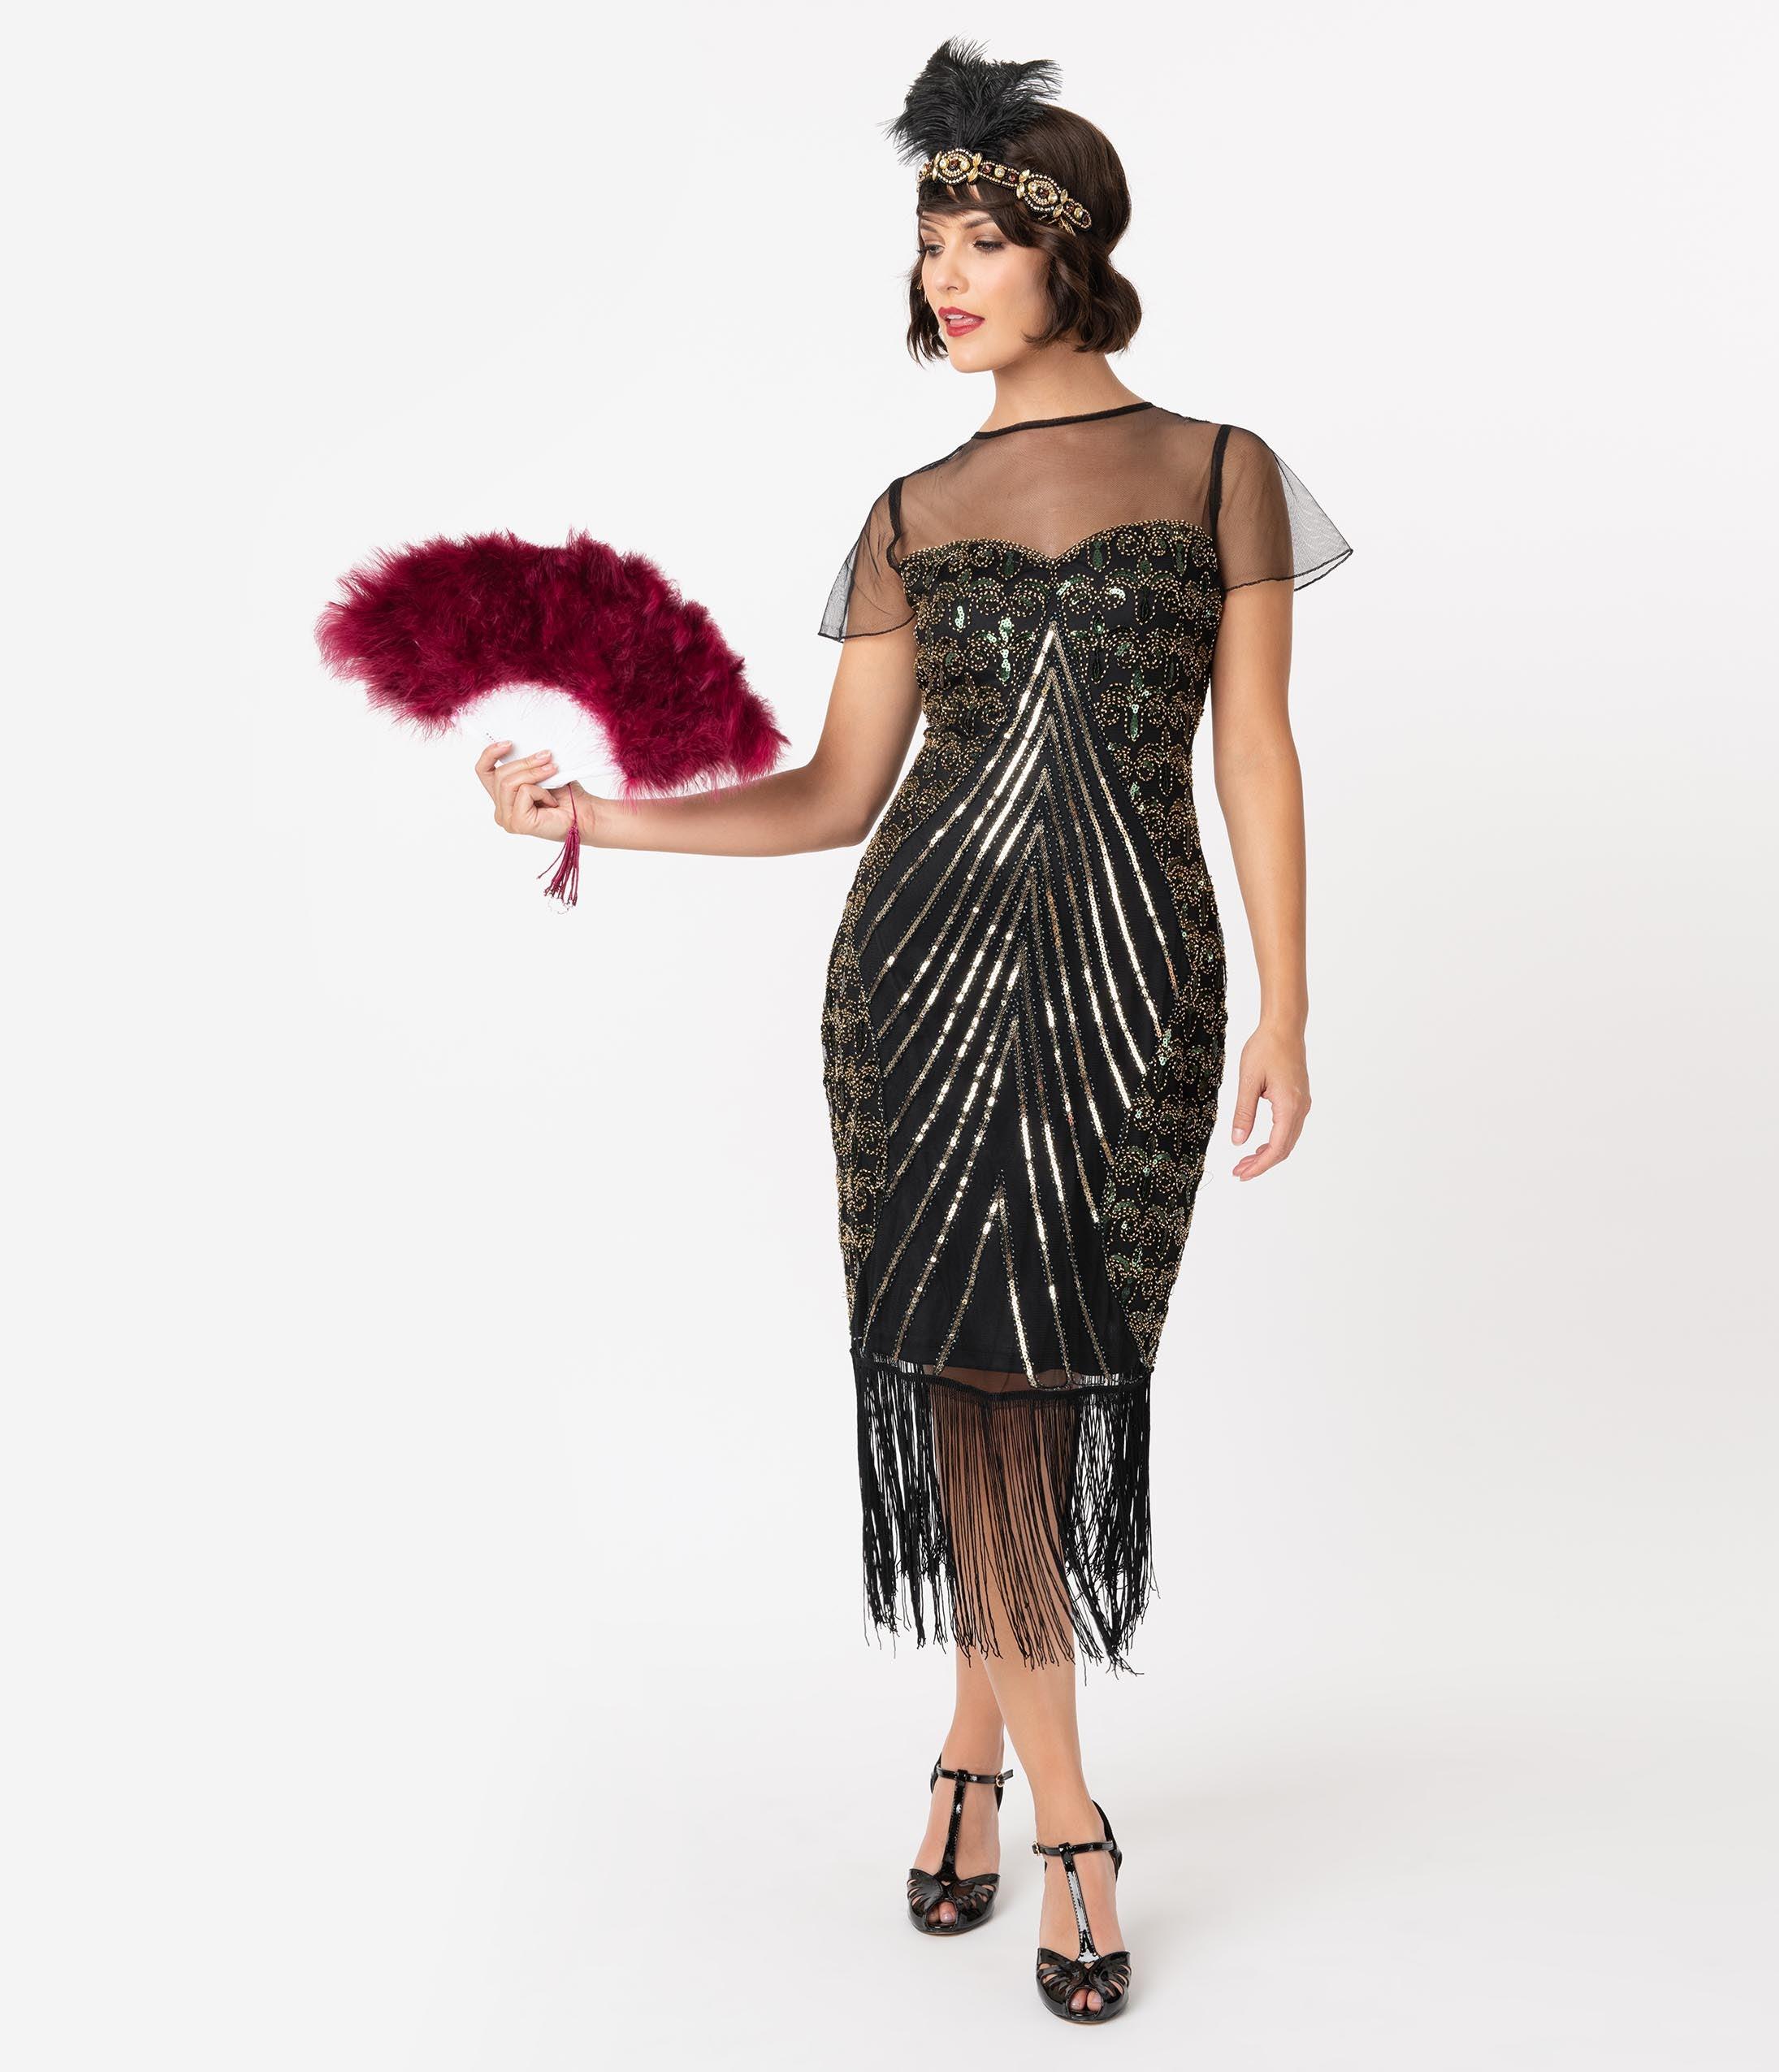 1920s Formal Dresses & Evening Gowns Guide Unique Vintage Black  Gold Beaded Cap Sleeve Rolande Fringe Flapper Dress $98.00 AT vintagedancer.com